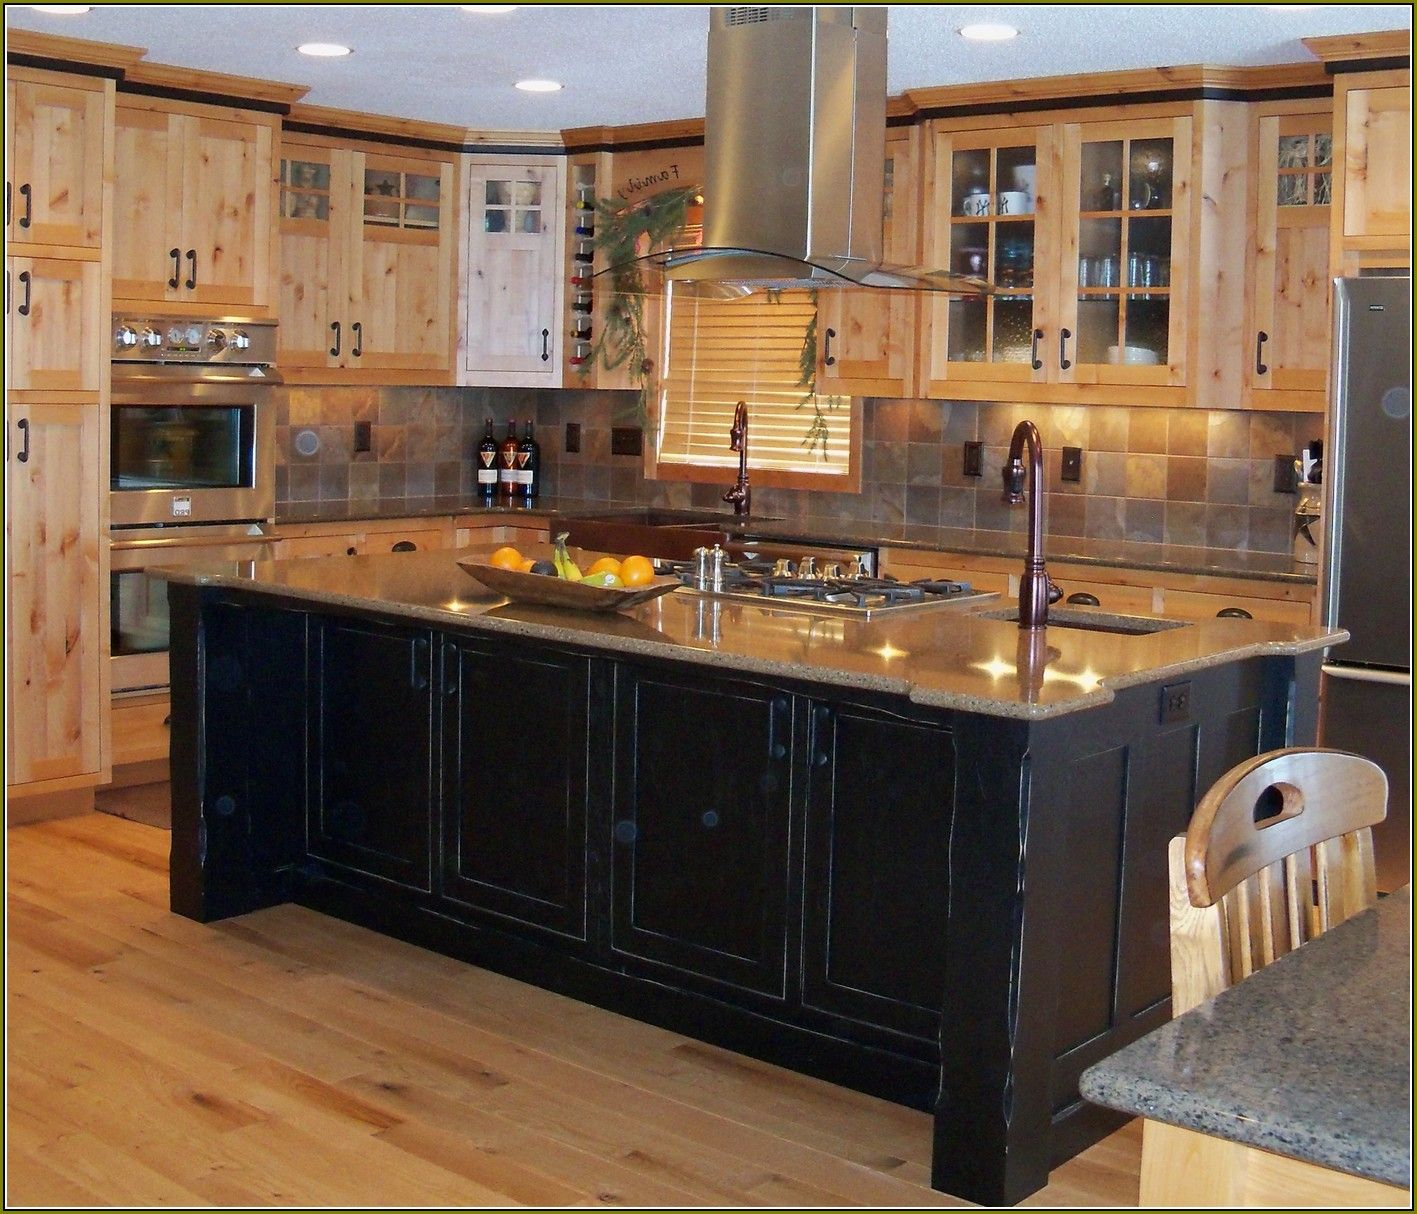 Black Paint For Kitchen Cabinets: How Paint Distressed Black Kitchen Cabinets Stylish With